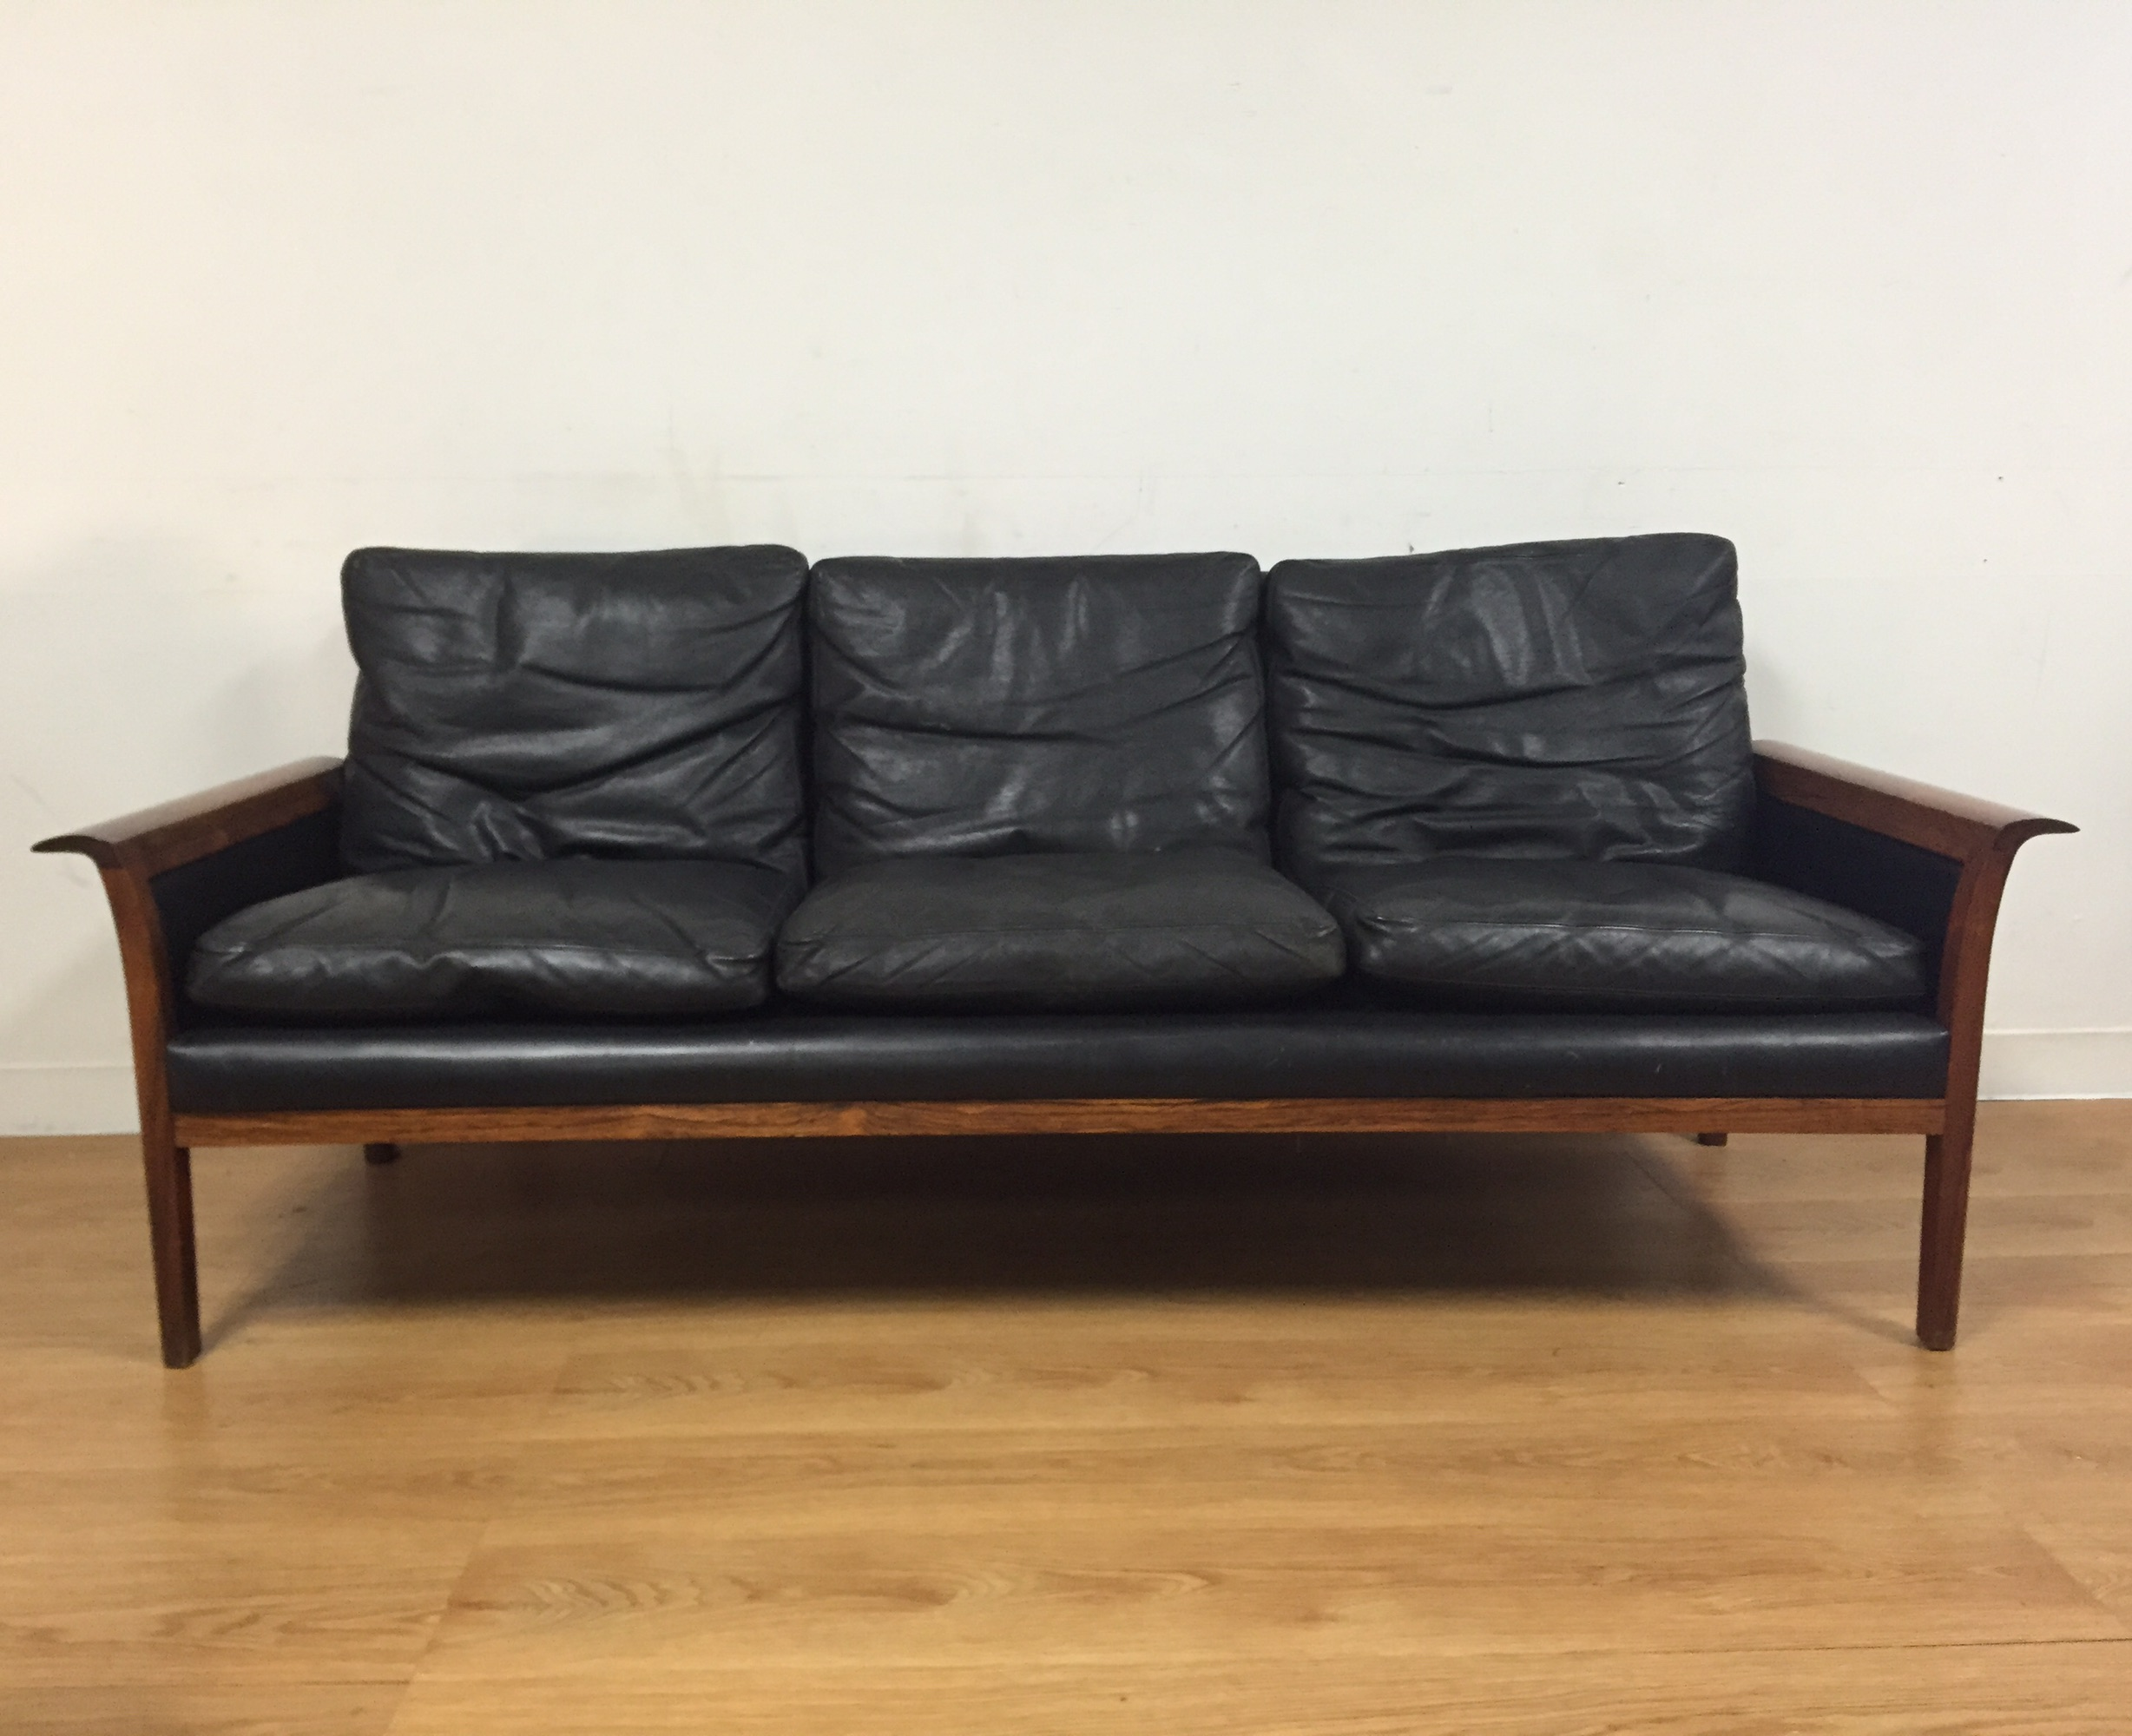 Merveilleux A Beautiful Vintage 1960s Mid Century Modern Rosewood Frame Sofa With  Sculpted Arm Rests Wrapped